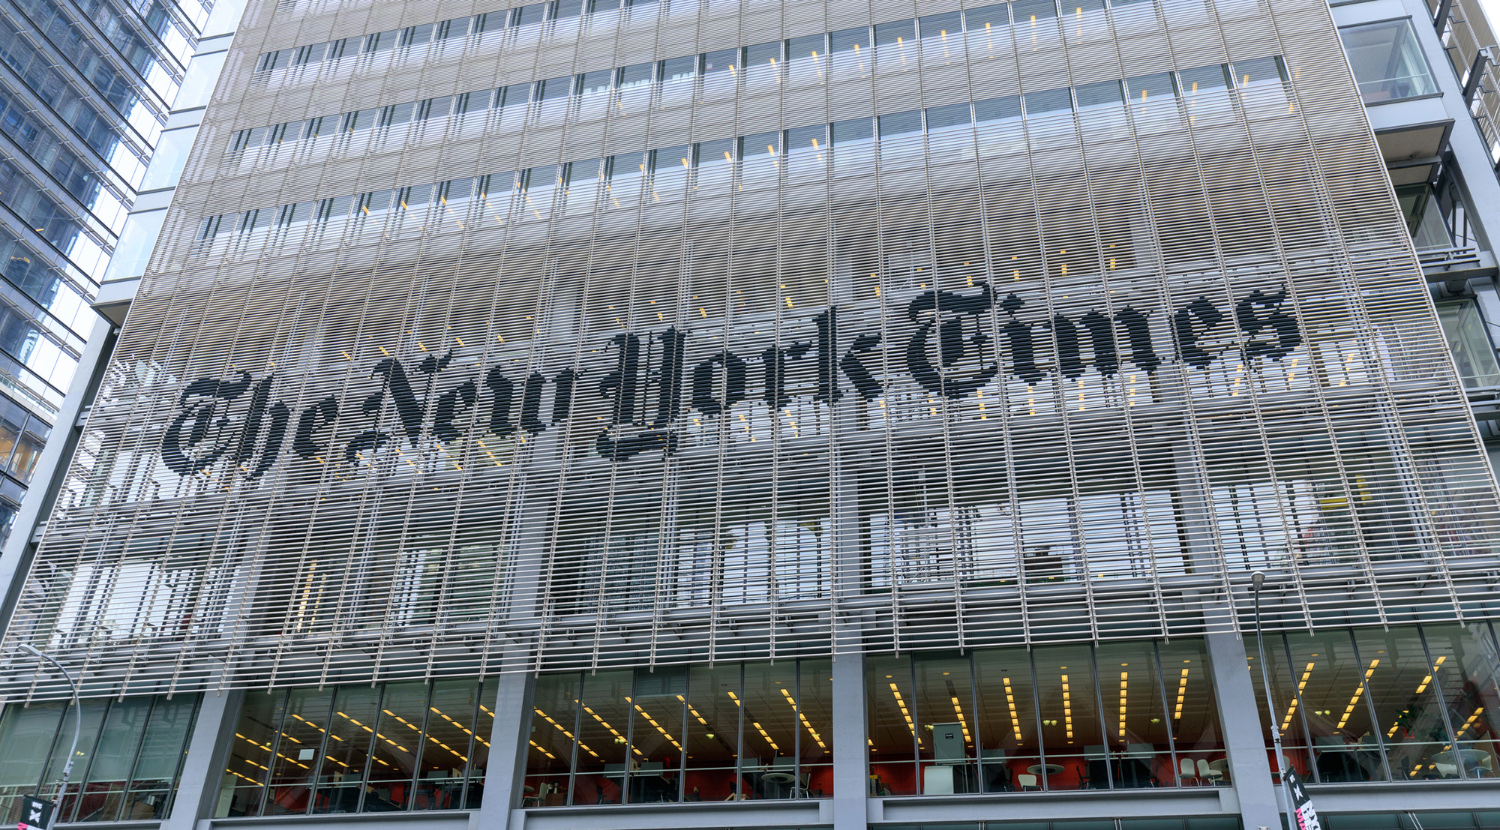 Headquarters of The New York Times on May 7, 2018 in New York City, N.Y.